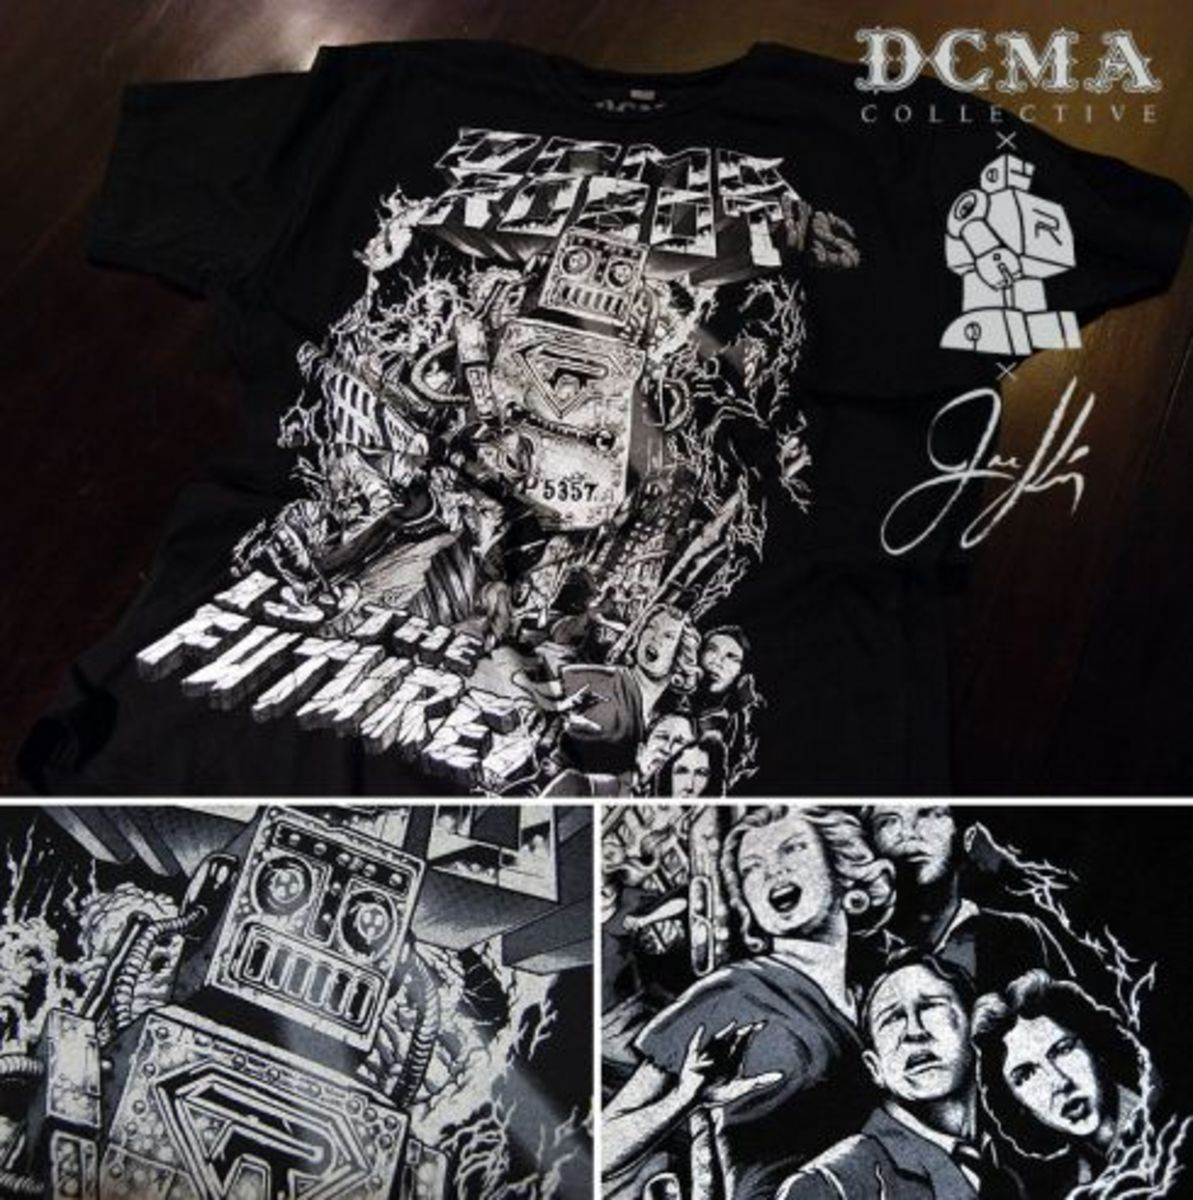 DCMA Collective x Robot is the Future x Joe King